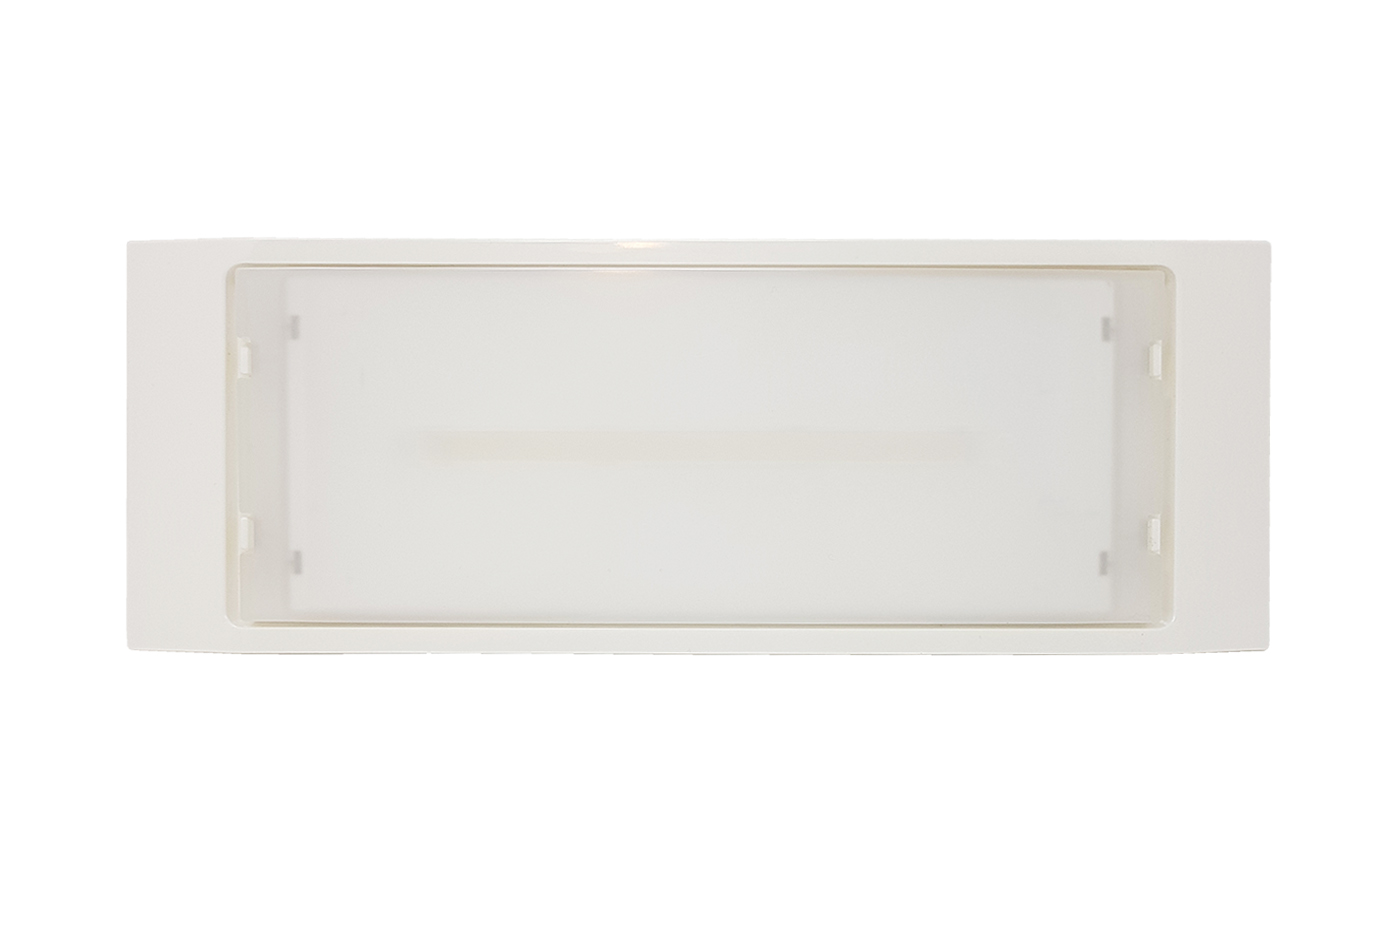 Plafoniera Led Con Emergenza : Beghelli plafoniera emergenza led w multicolore amazon